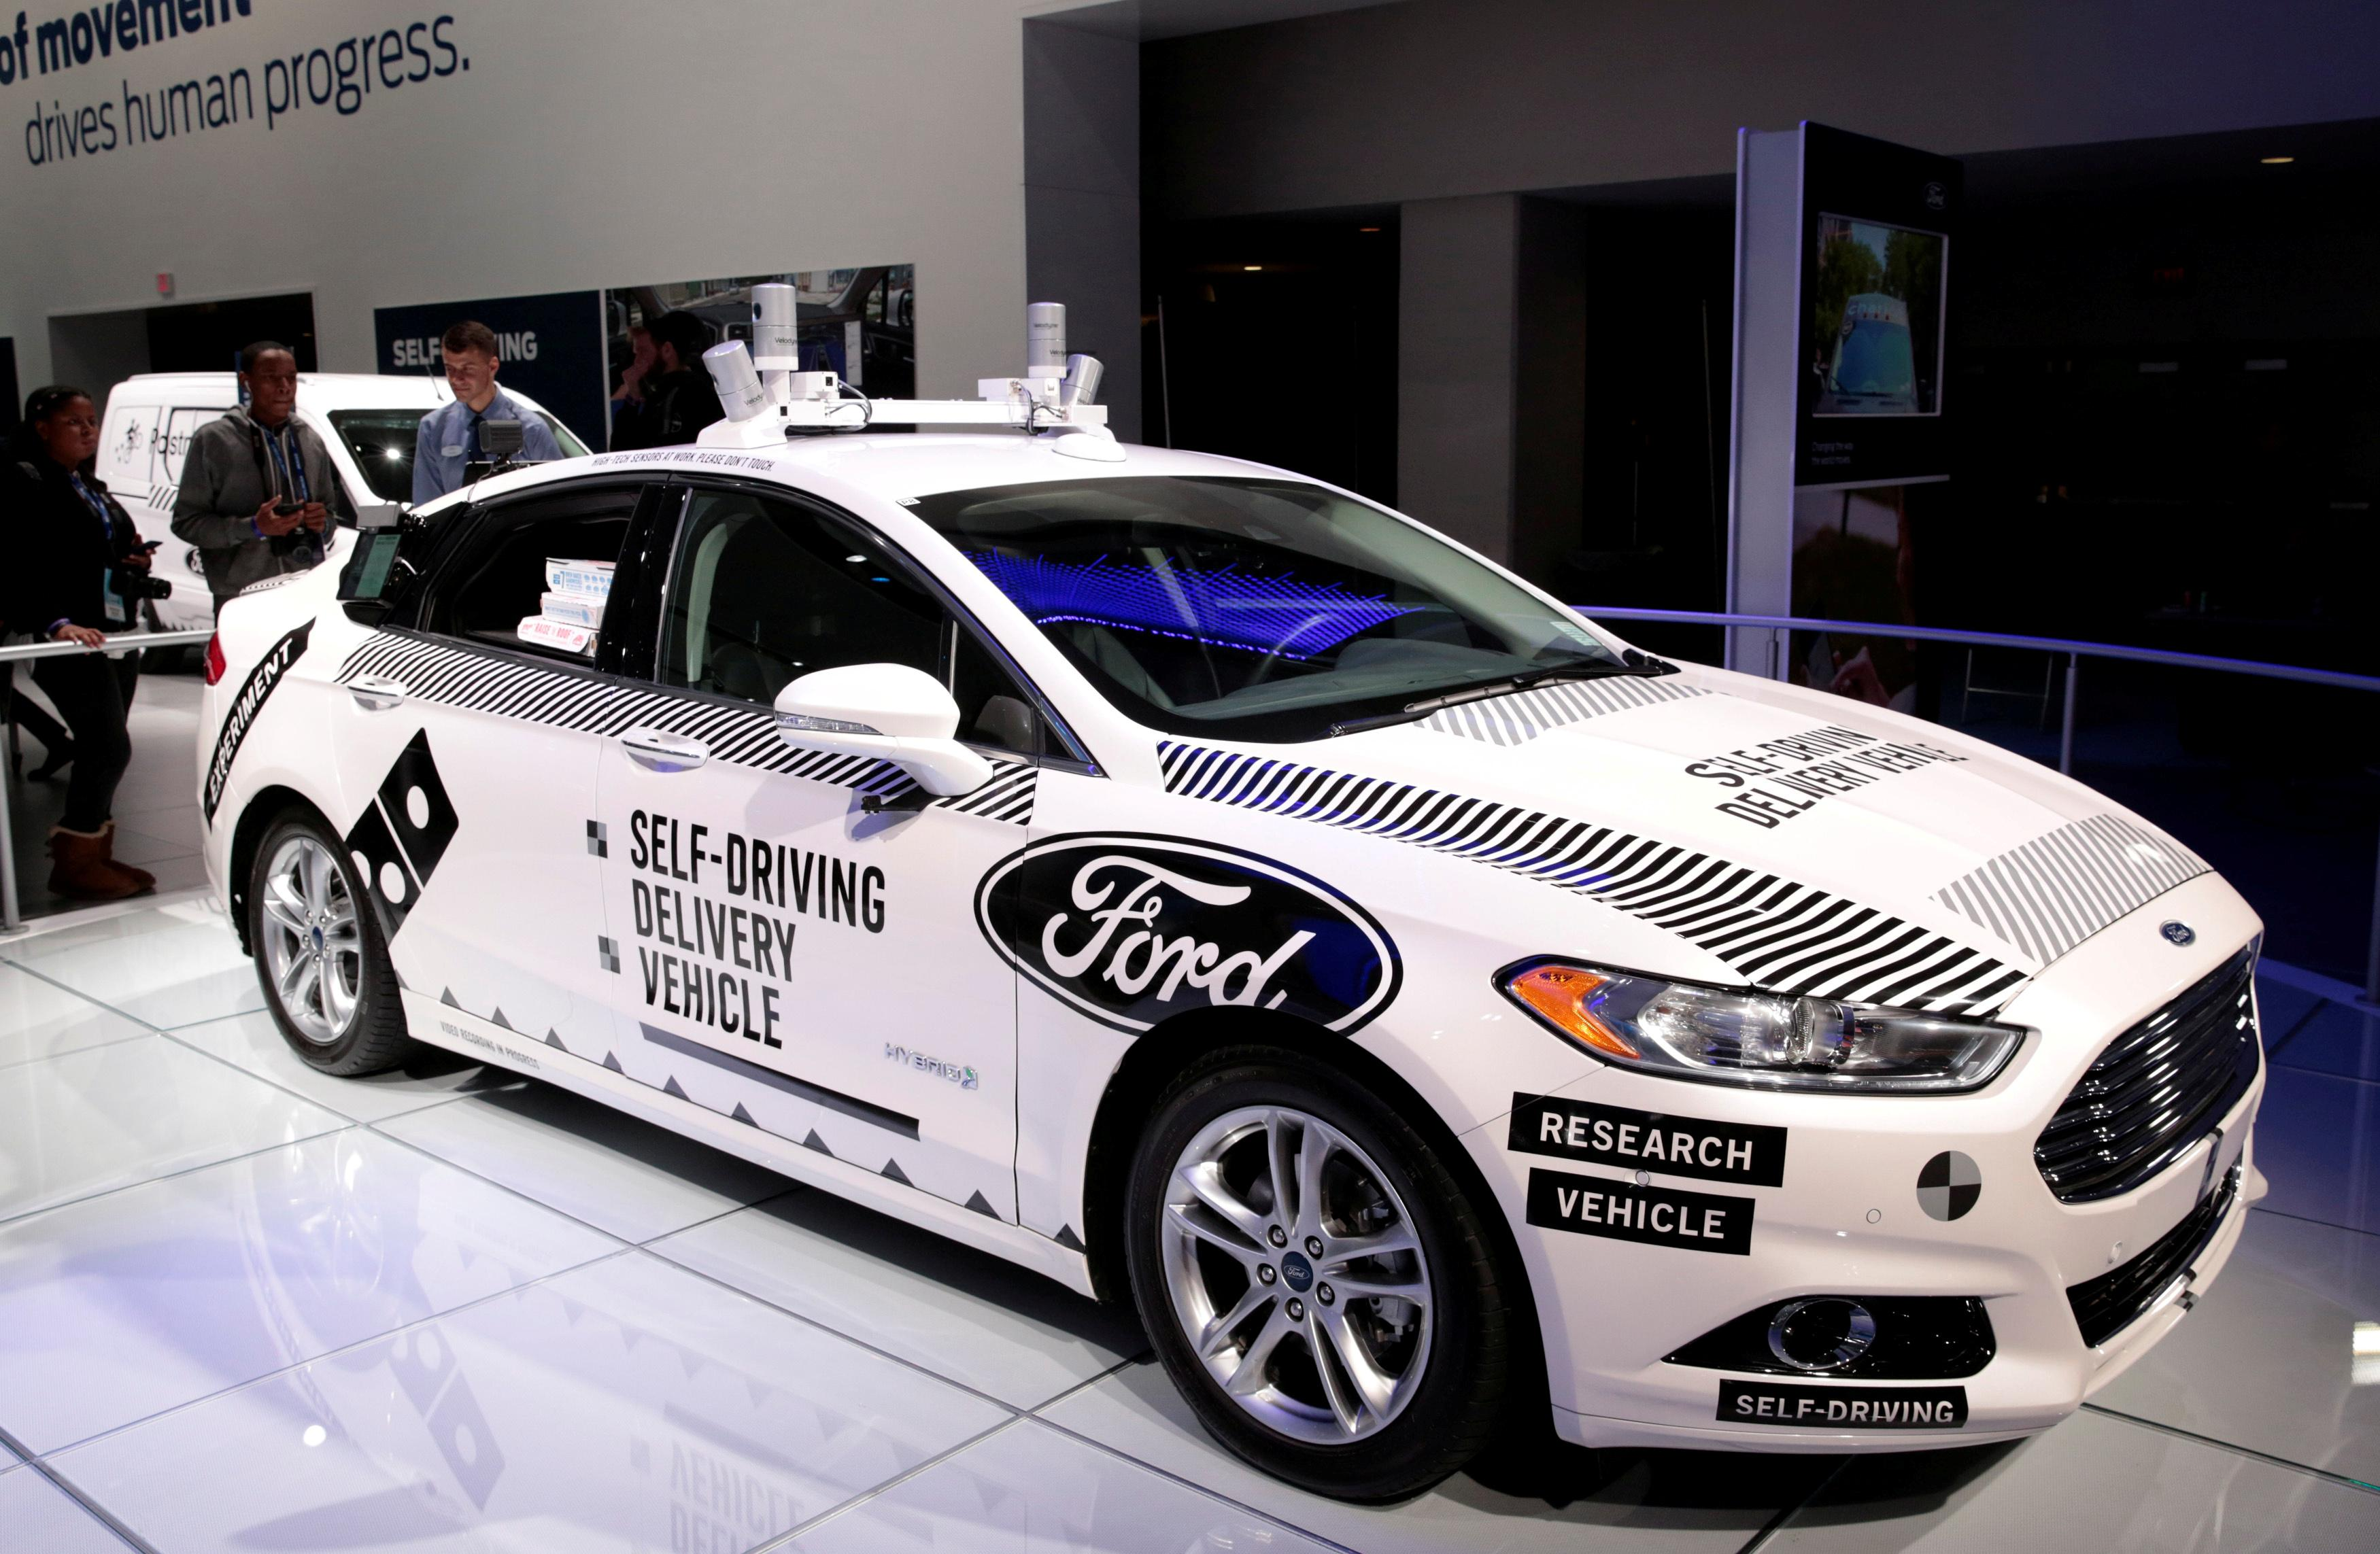 Ford denies it is in the self-driving slow lane